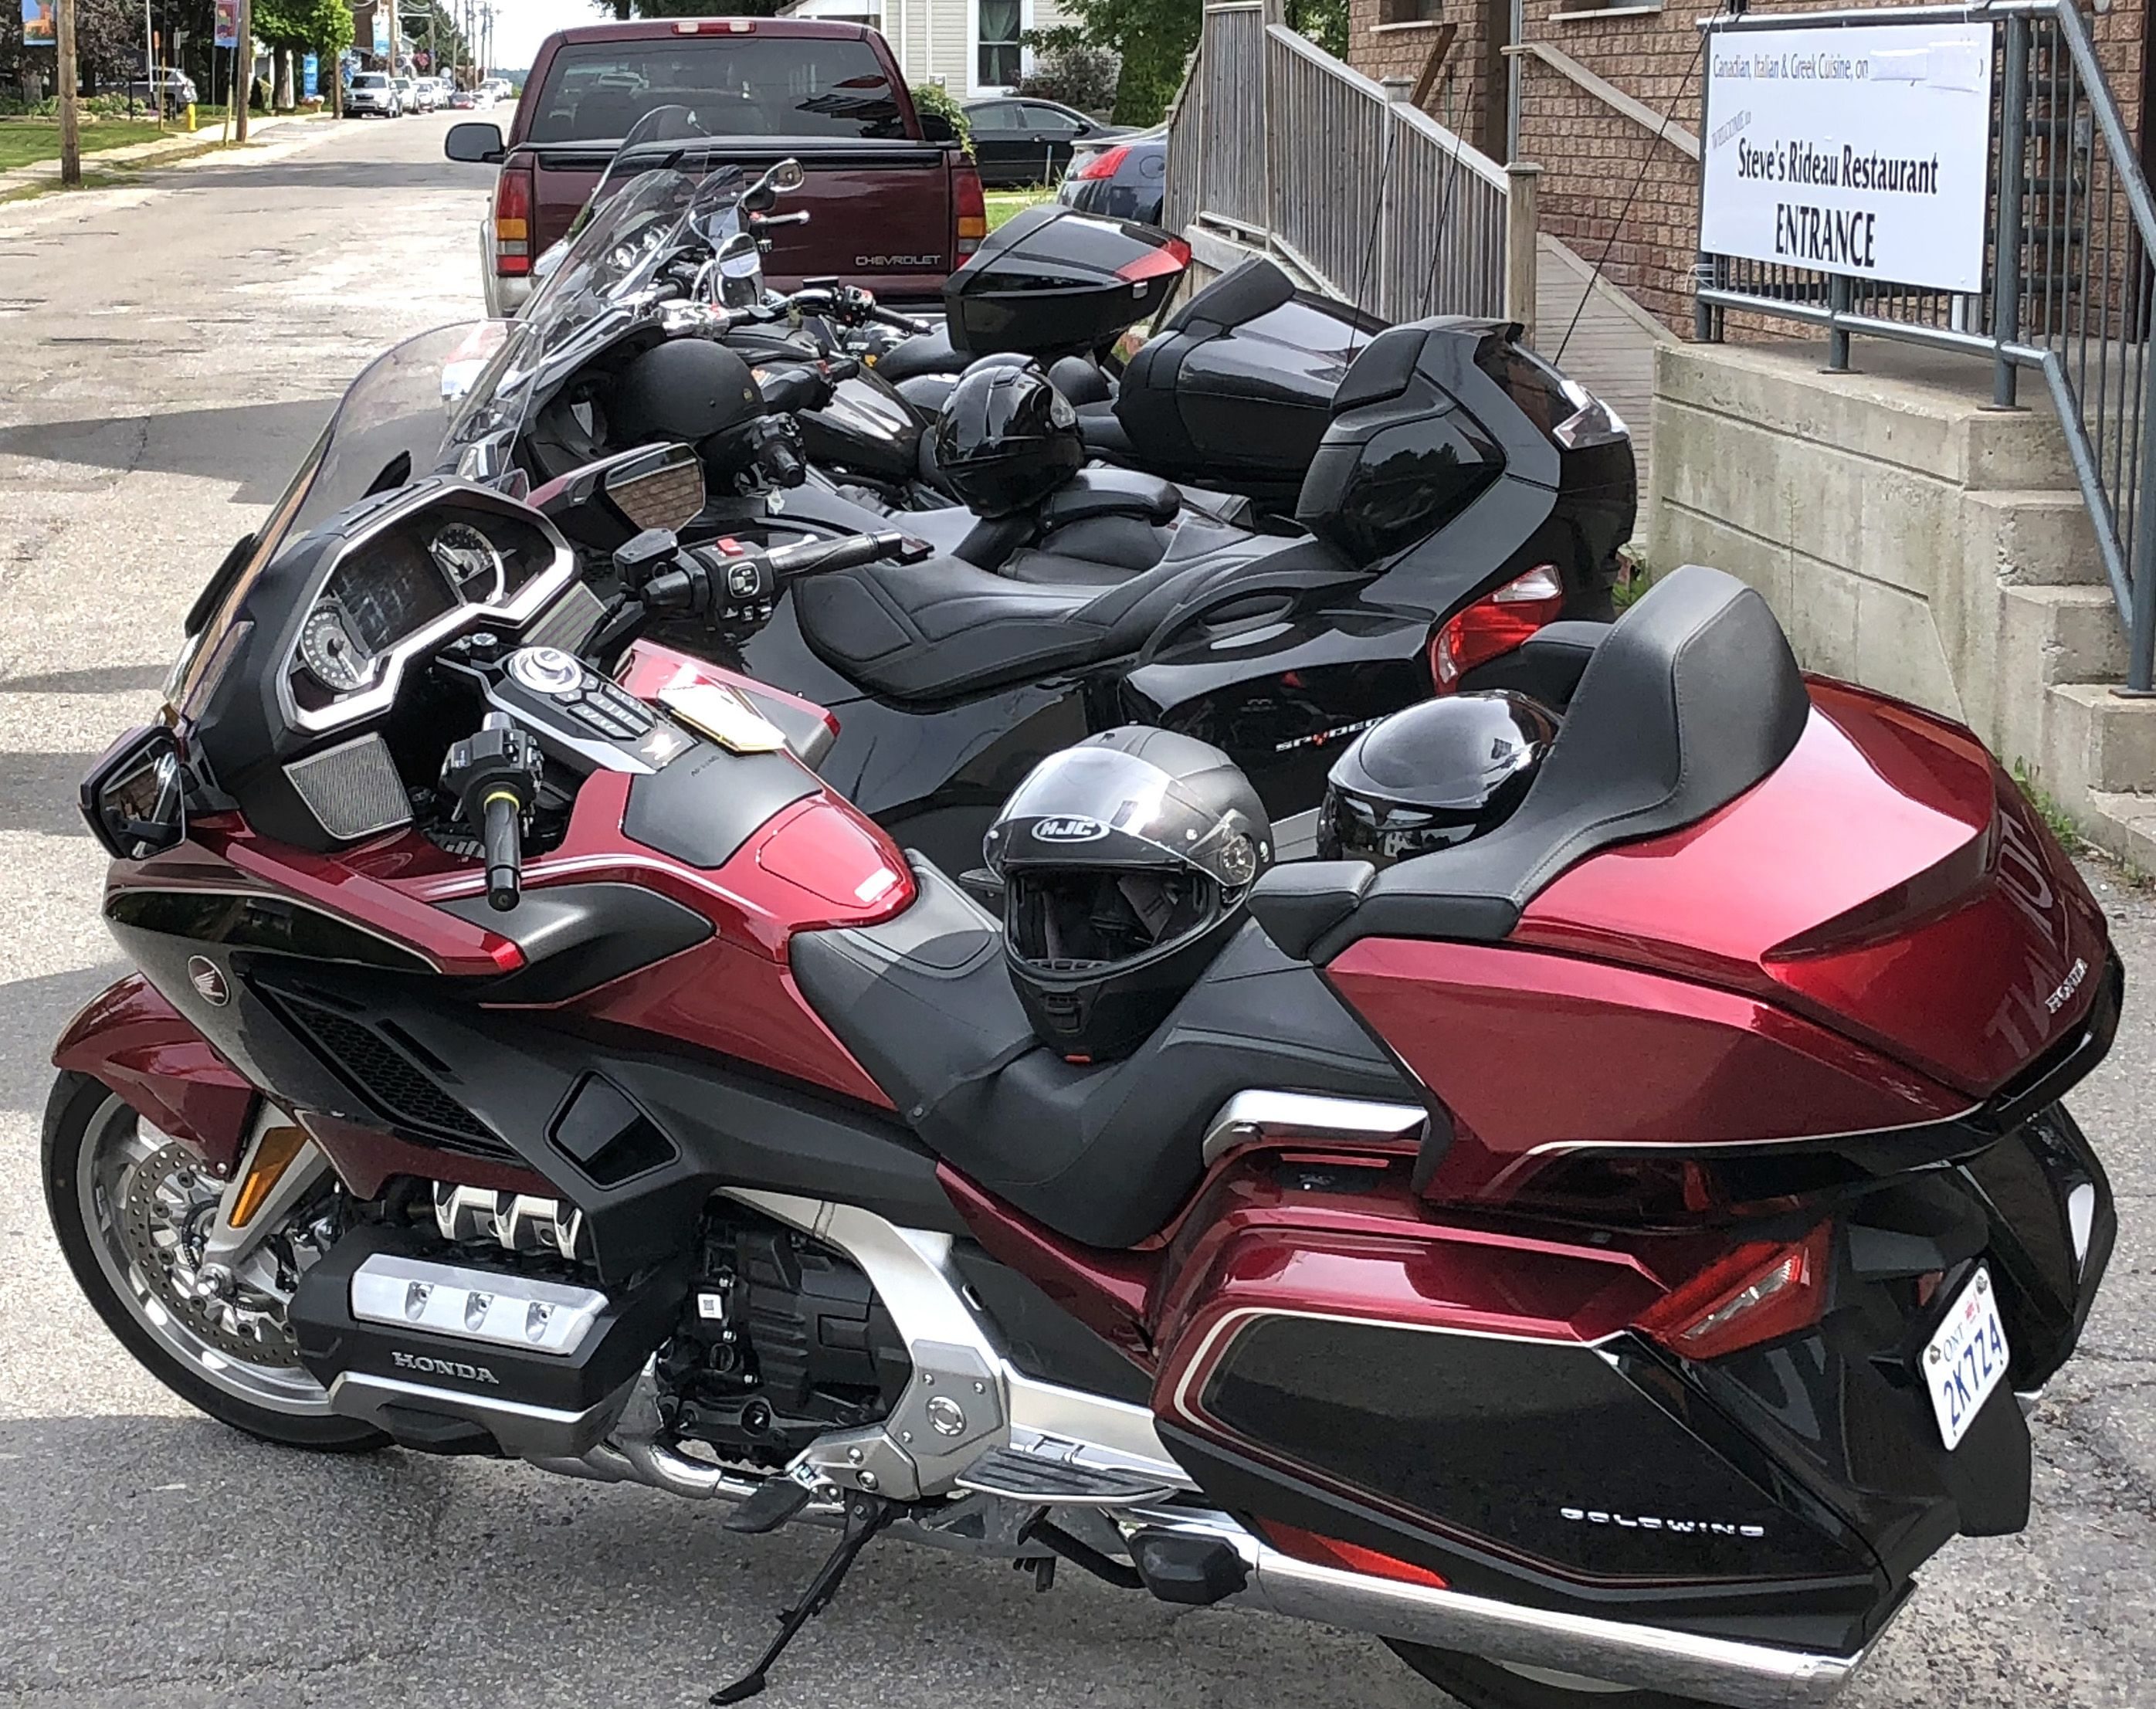 2020 Honda Goldwing Review.27 A 2020 Honda Gold Wing Review Review Cars Review Cars